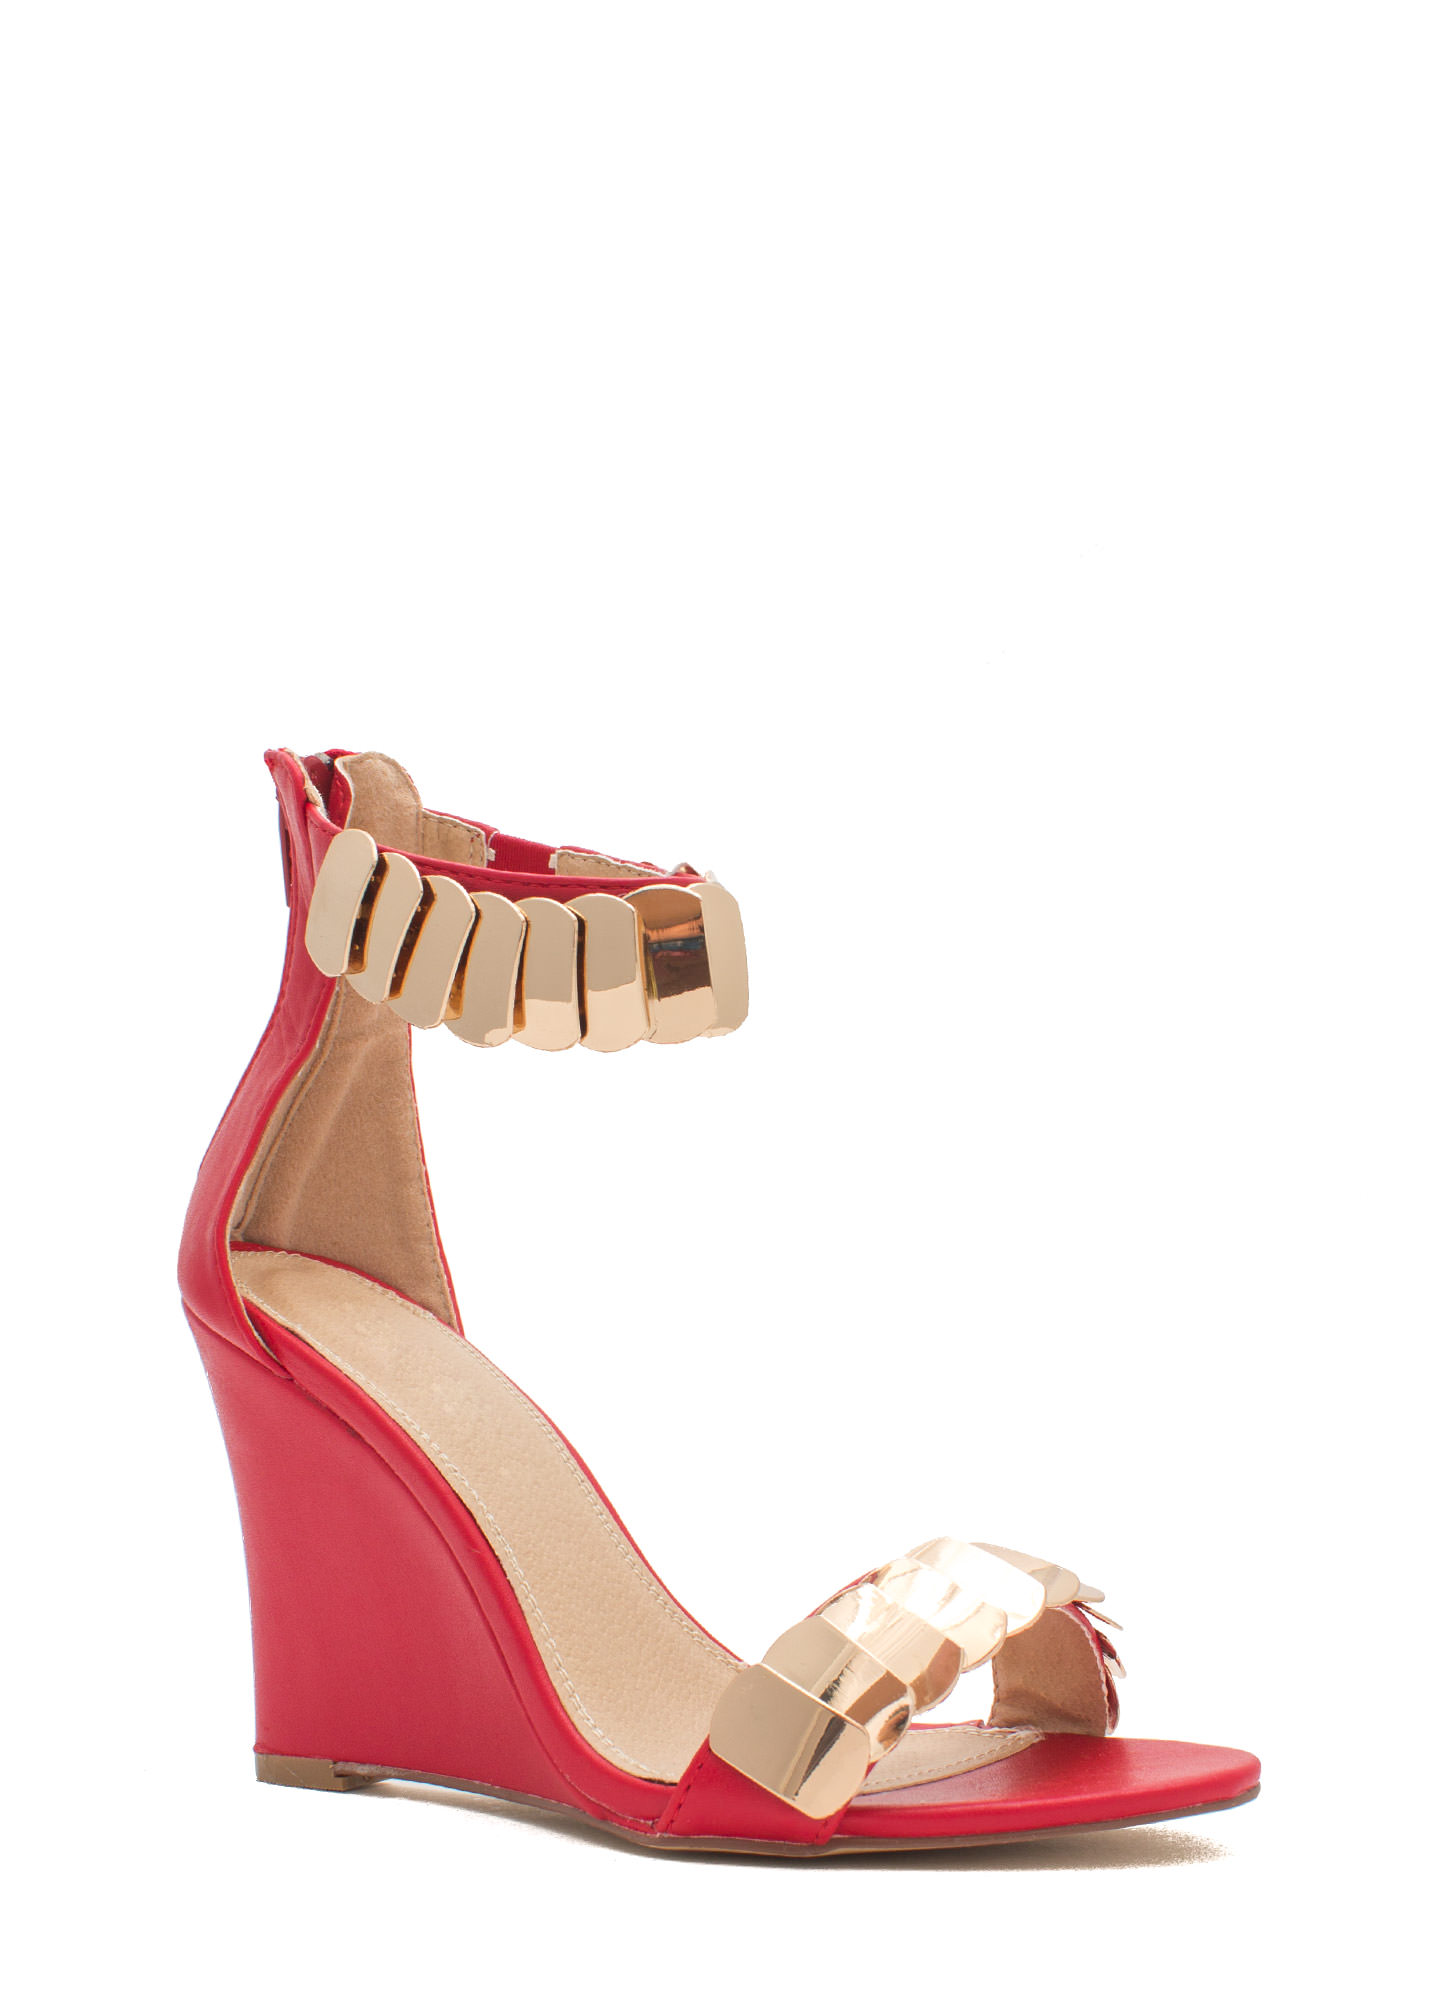 Layered Scales Faux Leather Wedges RED